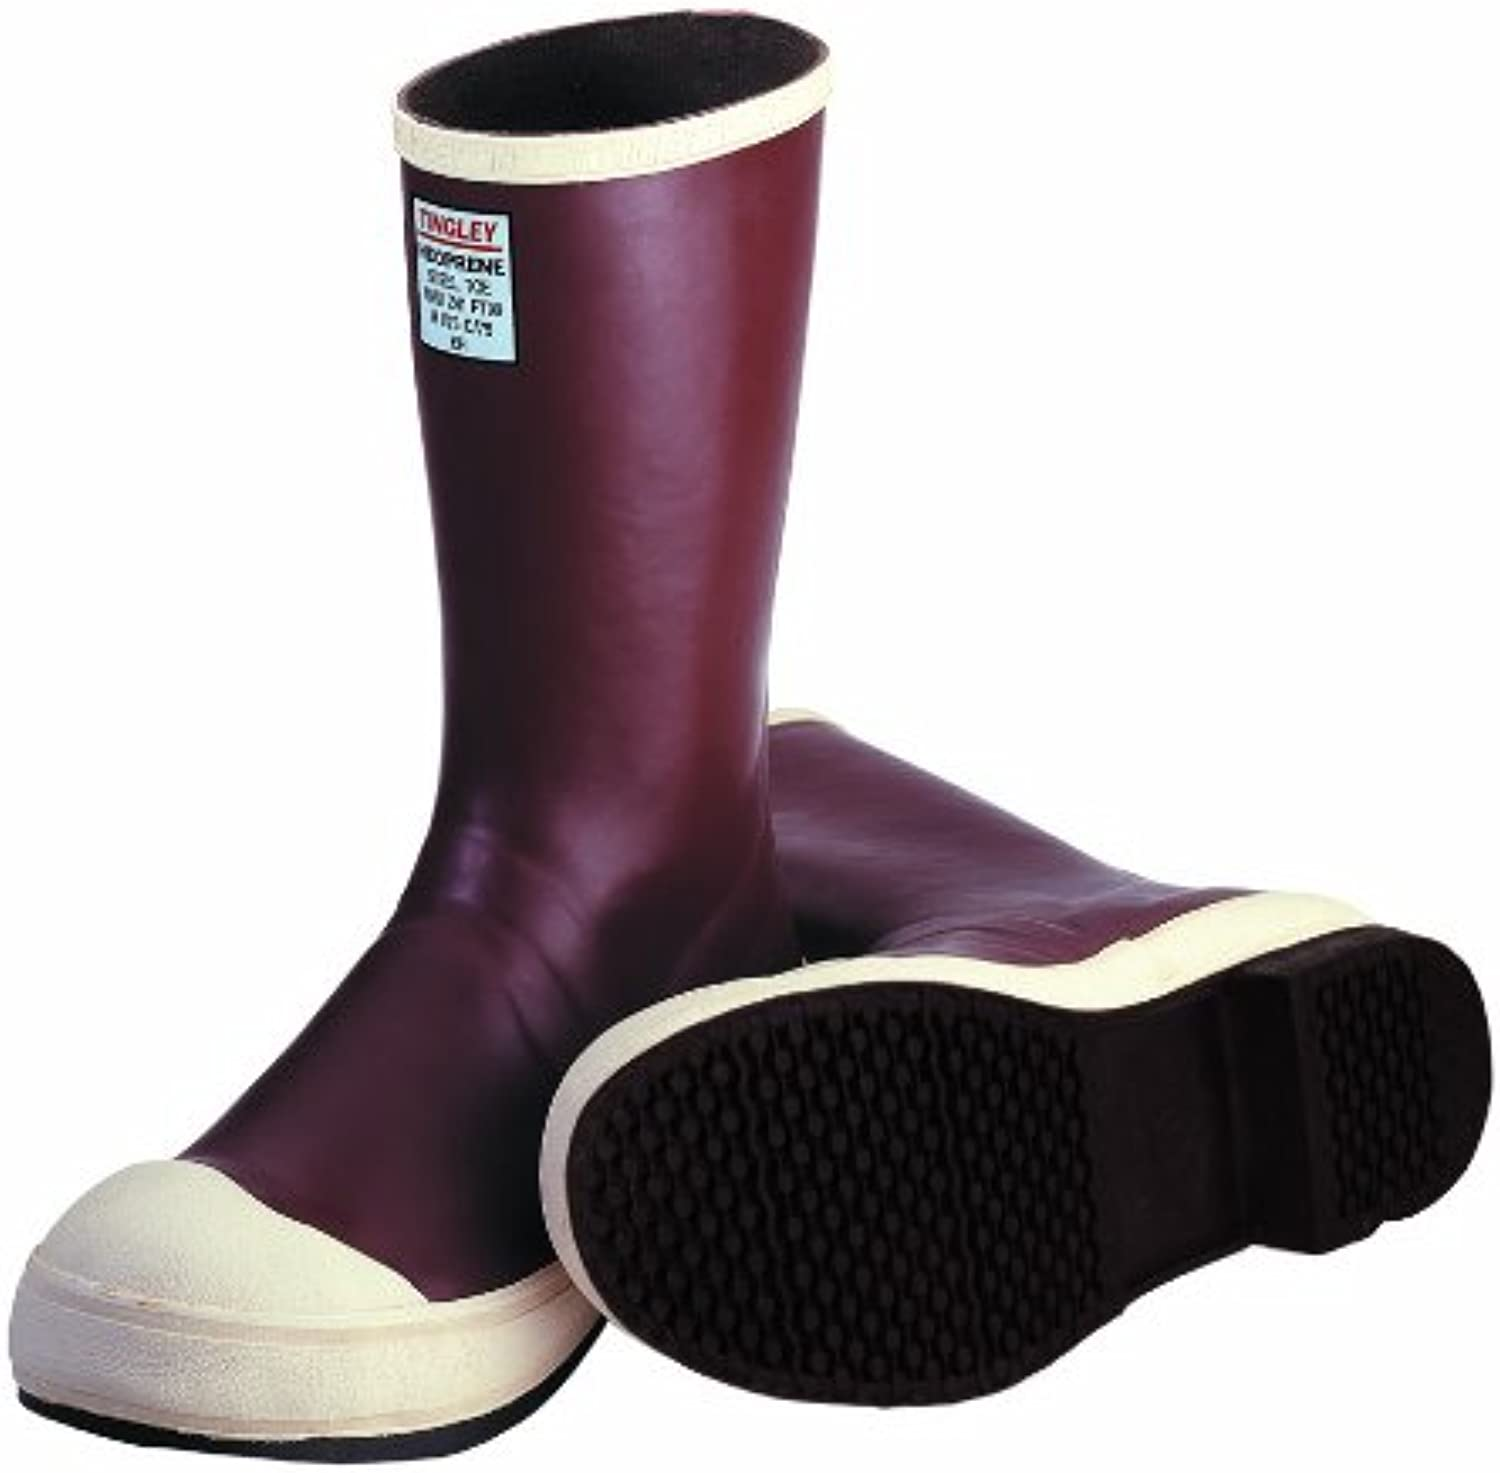 TINGLEY MB924B.15 12-1 2  Safety-Loc Outsole Neoprene Boot with Fabric Liner, Plain Toe, Size 15, Brick Red Brown